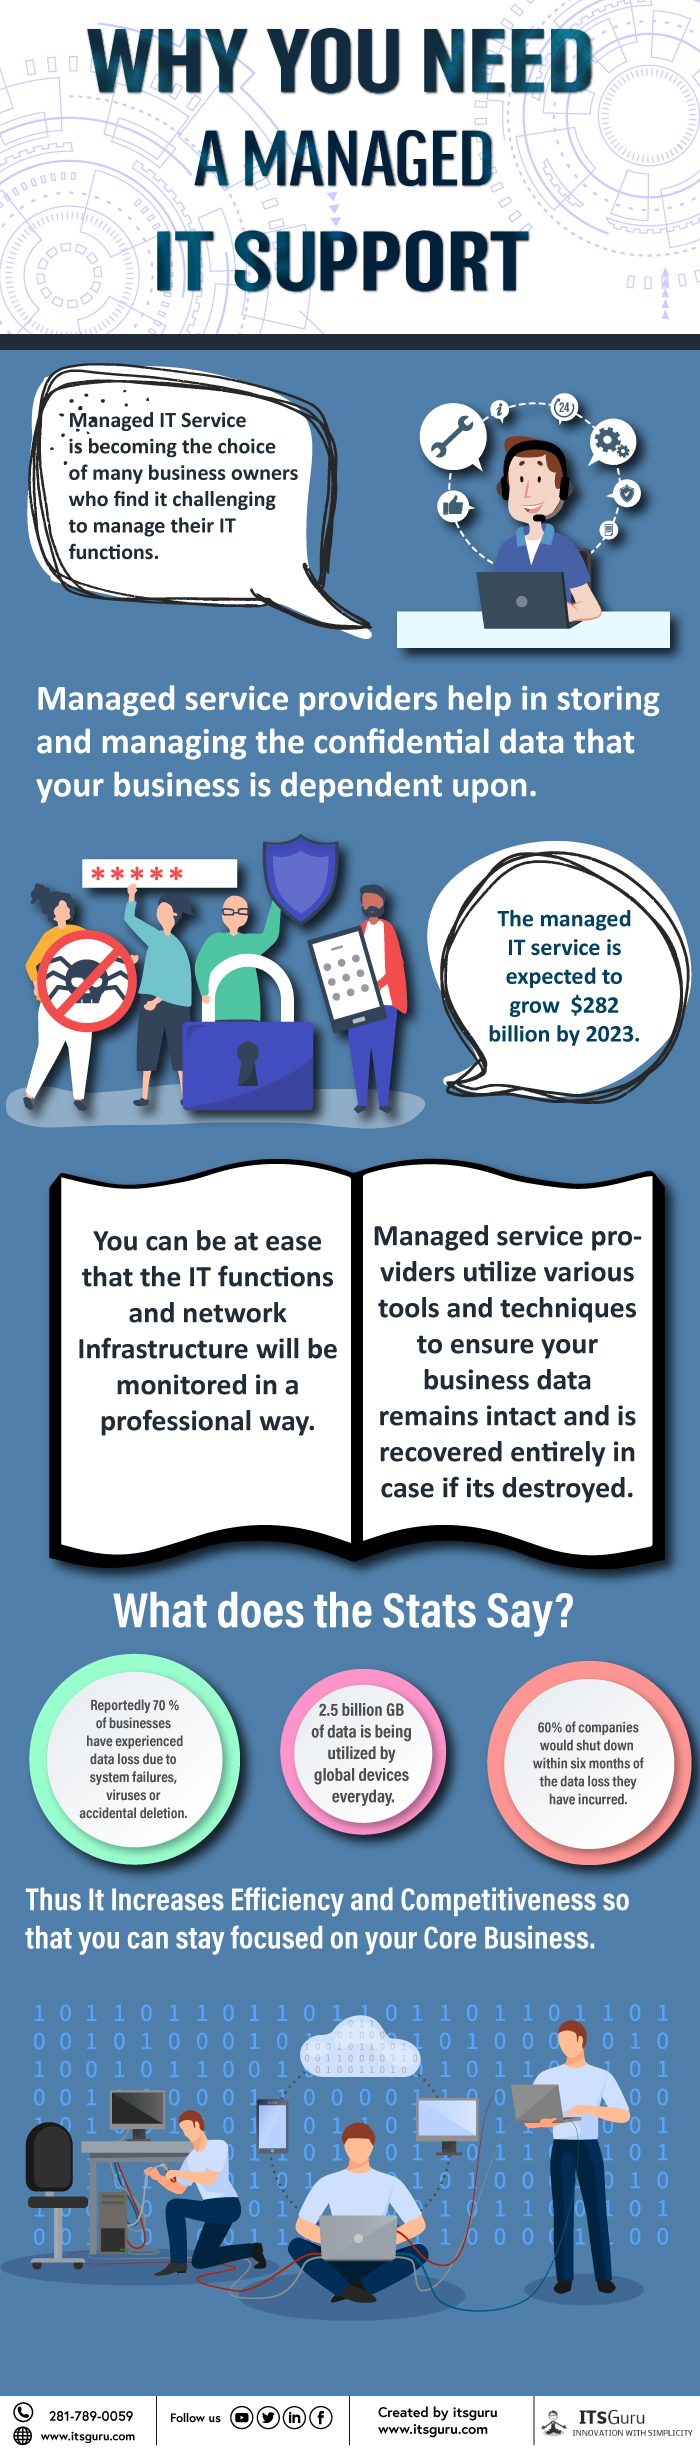 Why you need managed it support - Itsguru